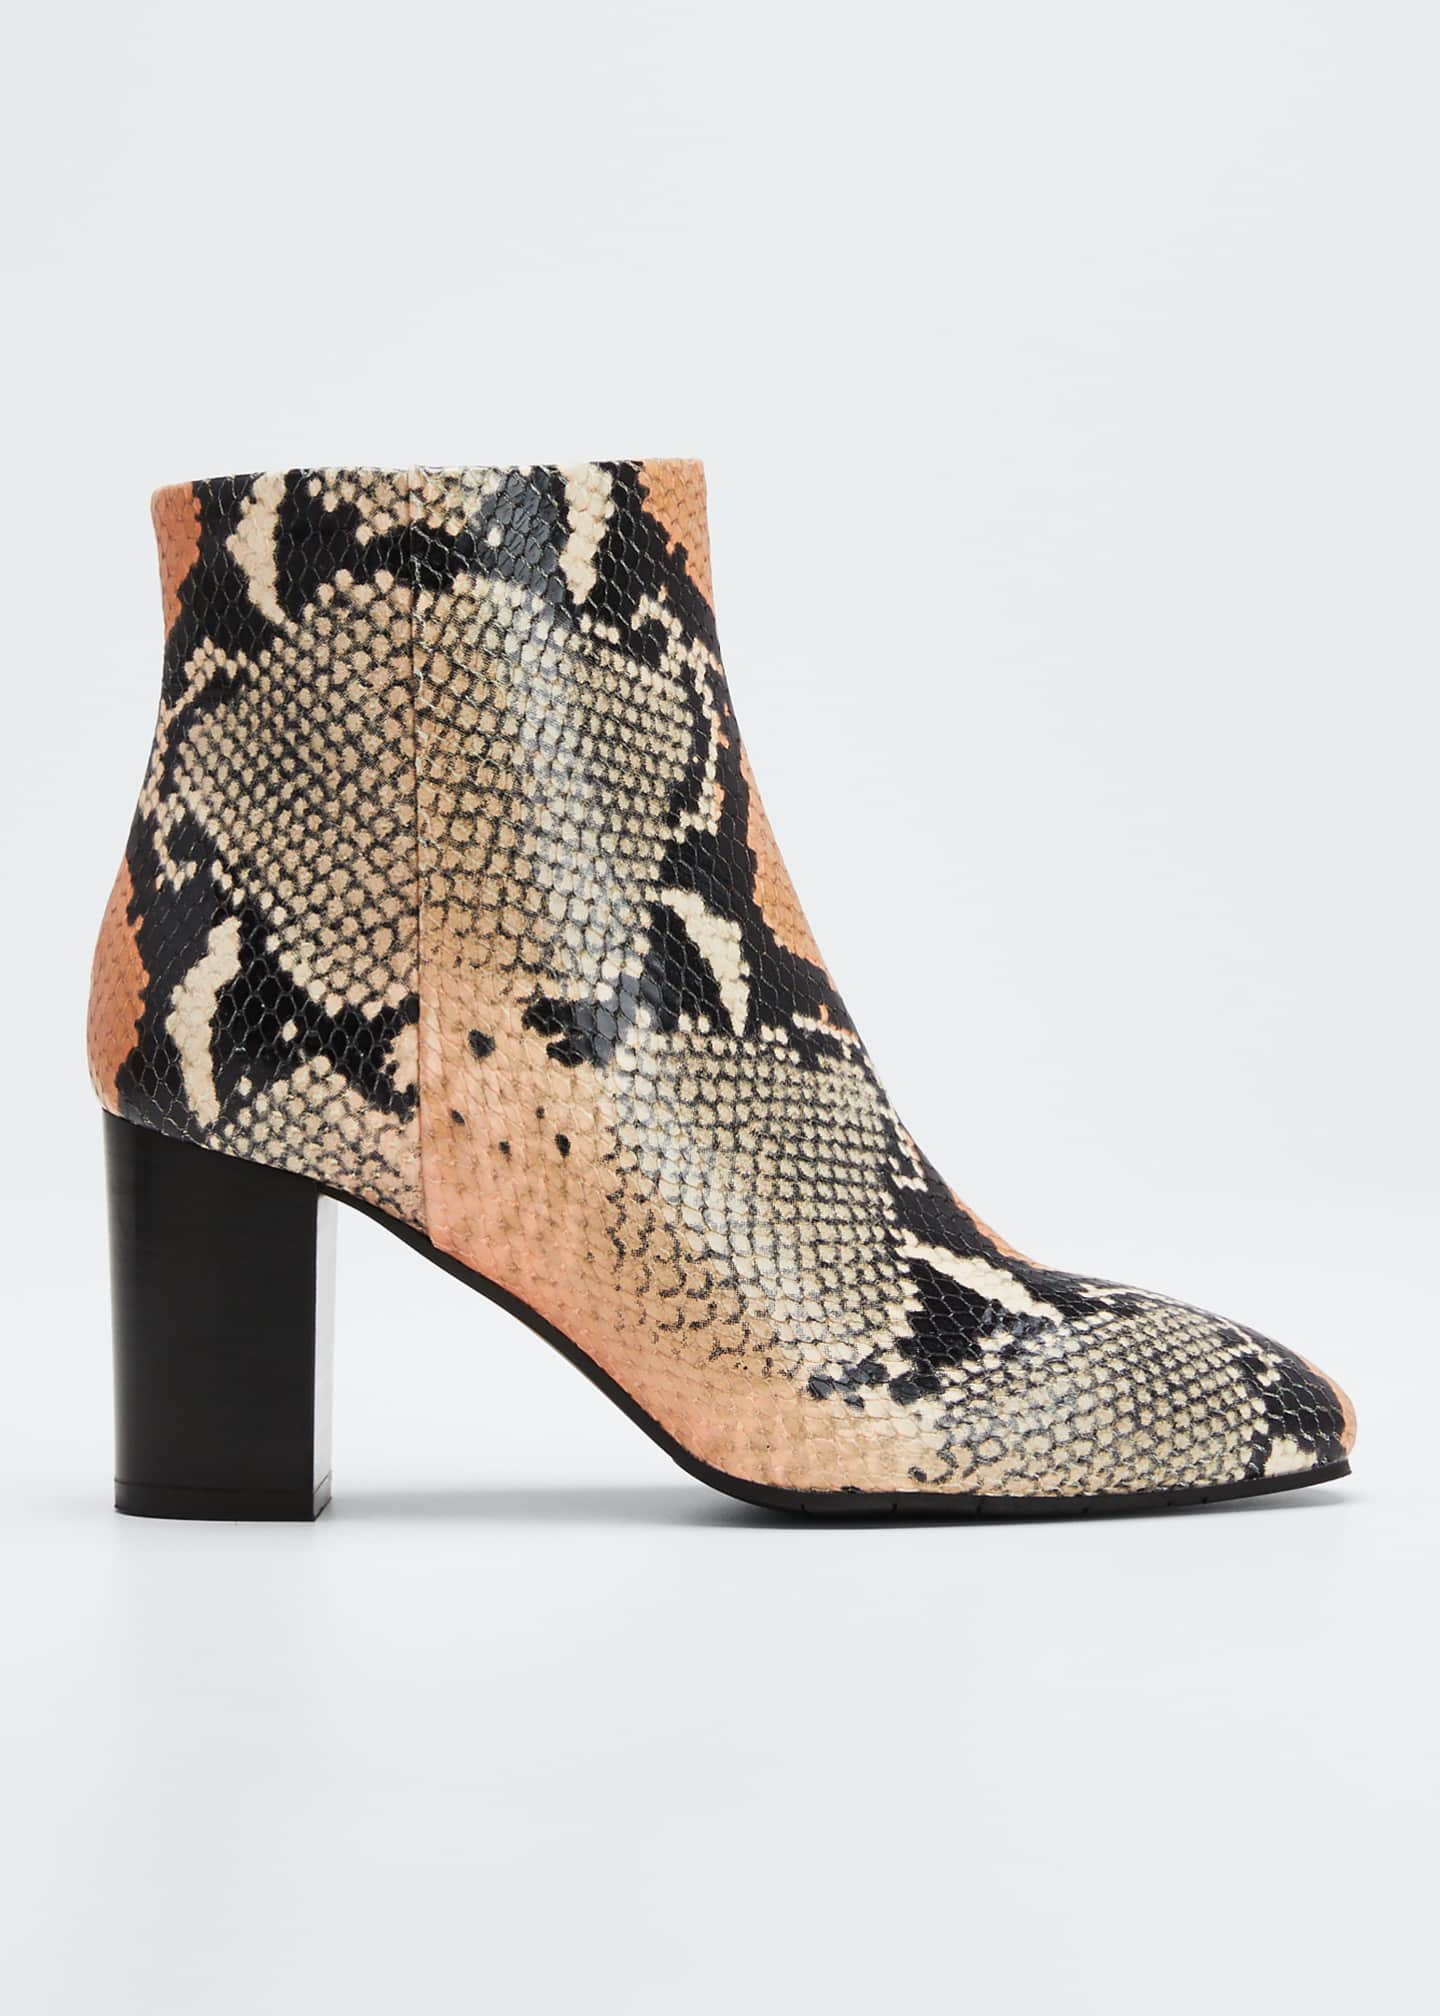 Aquatalia Florita Snake-Print Leather Zip Booties